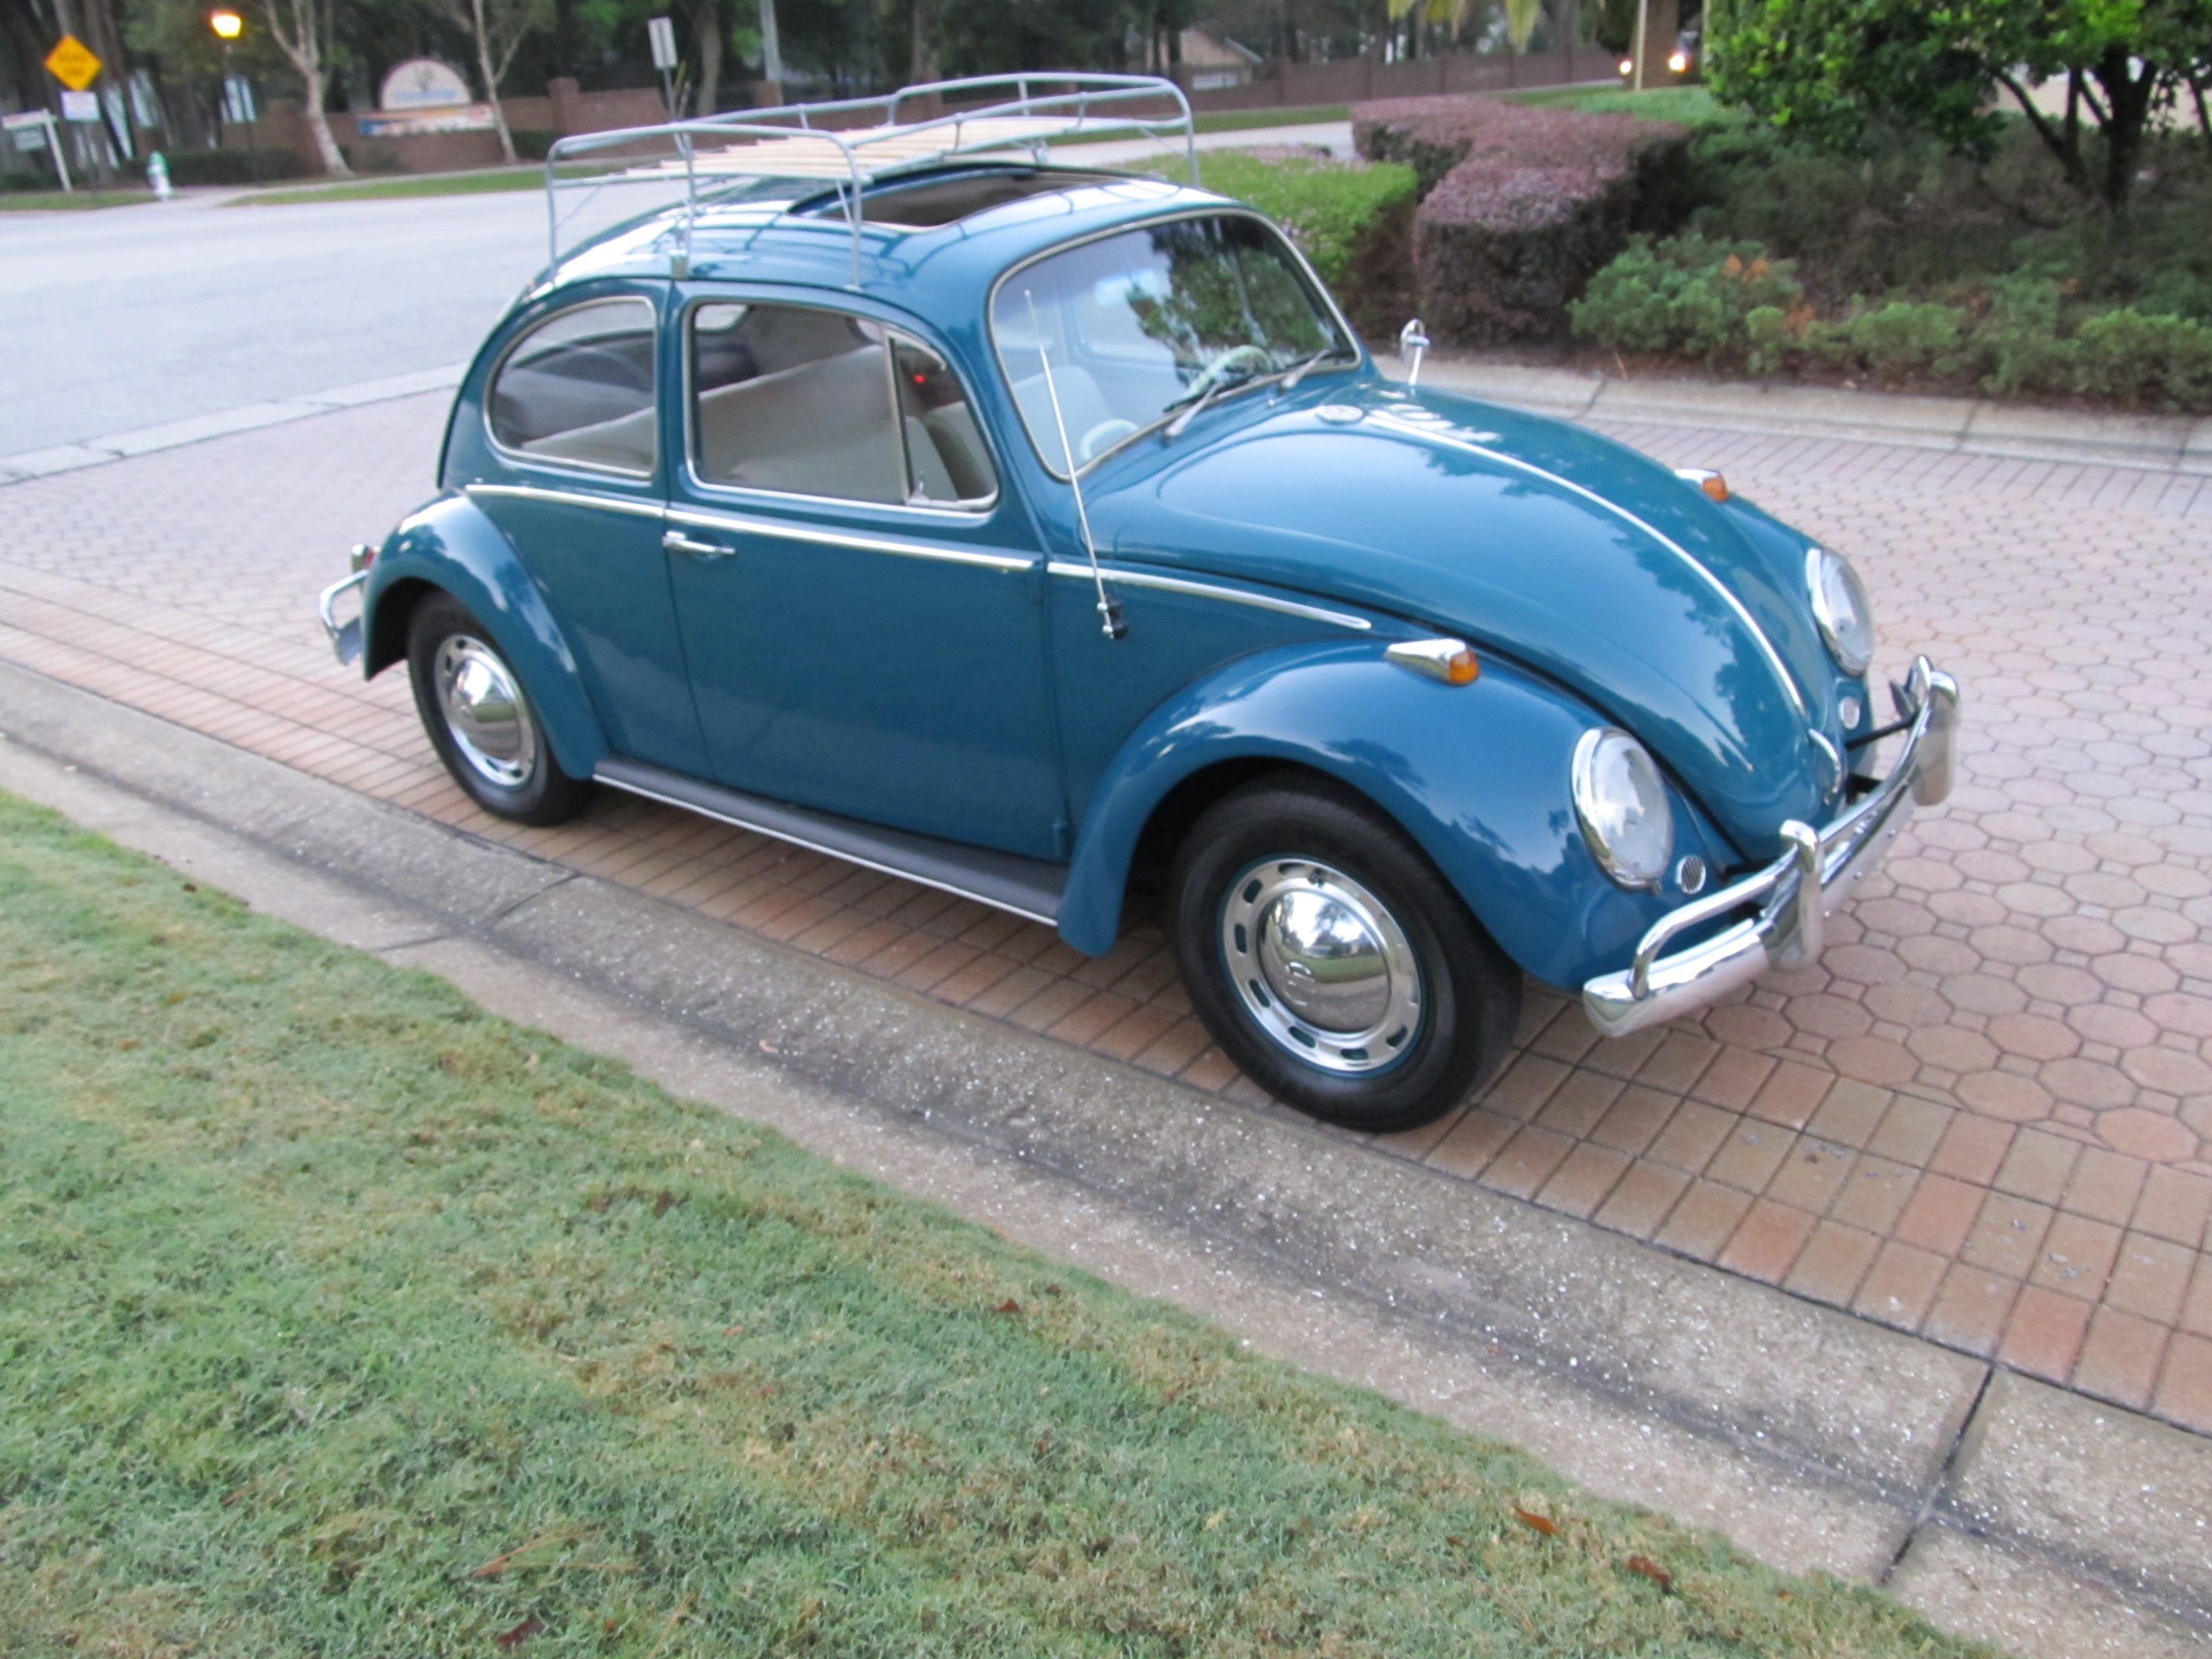 1965 volkswagen beetle a nicely restored sunroof bug finished in sea blue with the new bone interior including headliner and carpet it has 68